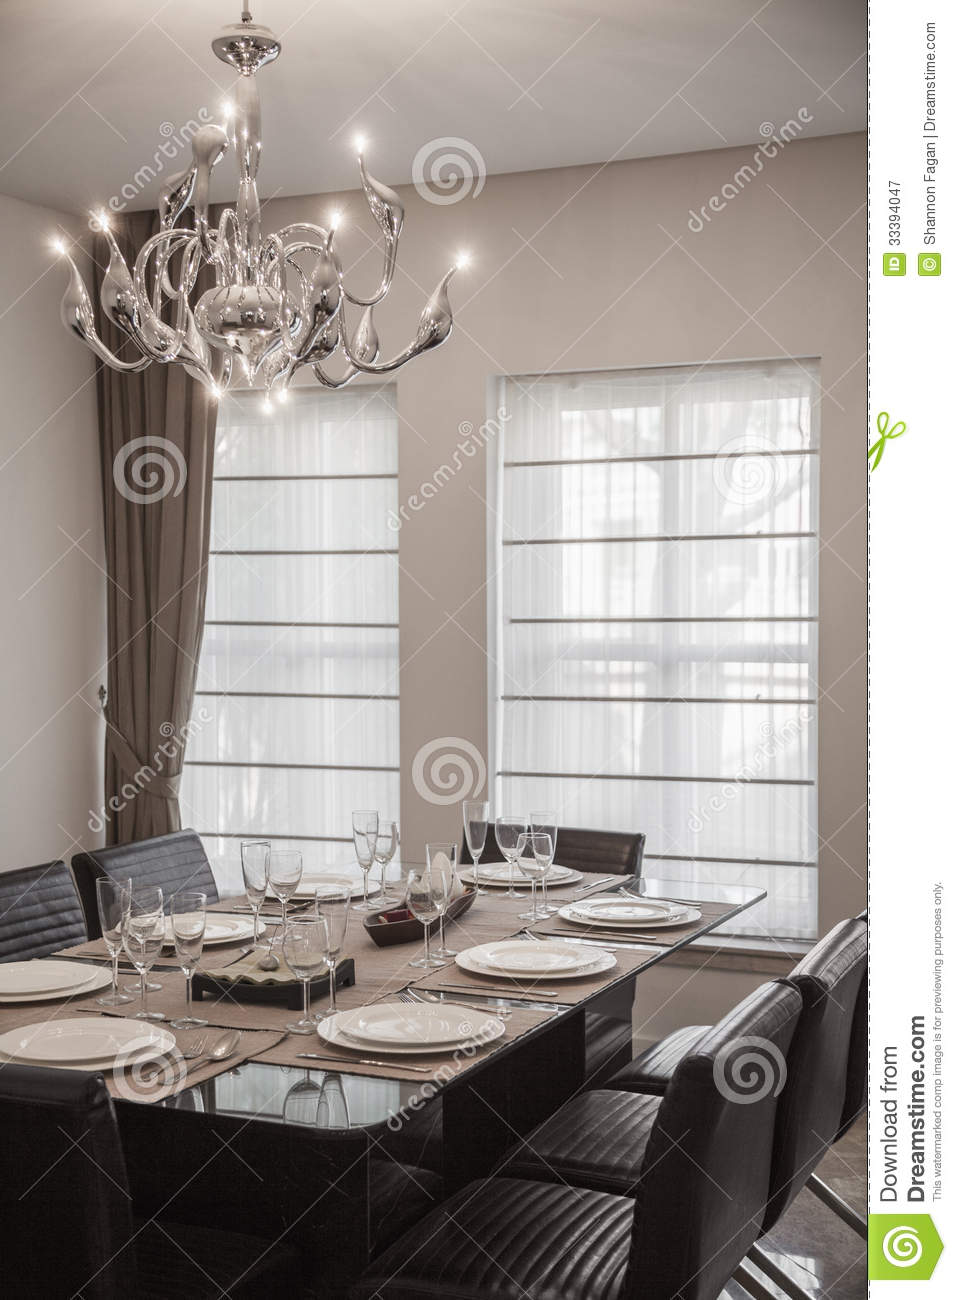 lustre salle a manger meubles salle manger u ides pratique with lustre salle a manger lustre. Black Bedroom Furniture Sets. Home Design Ideas